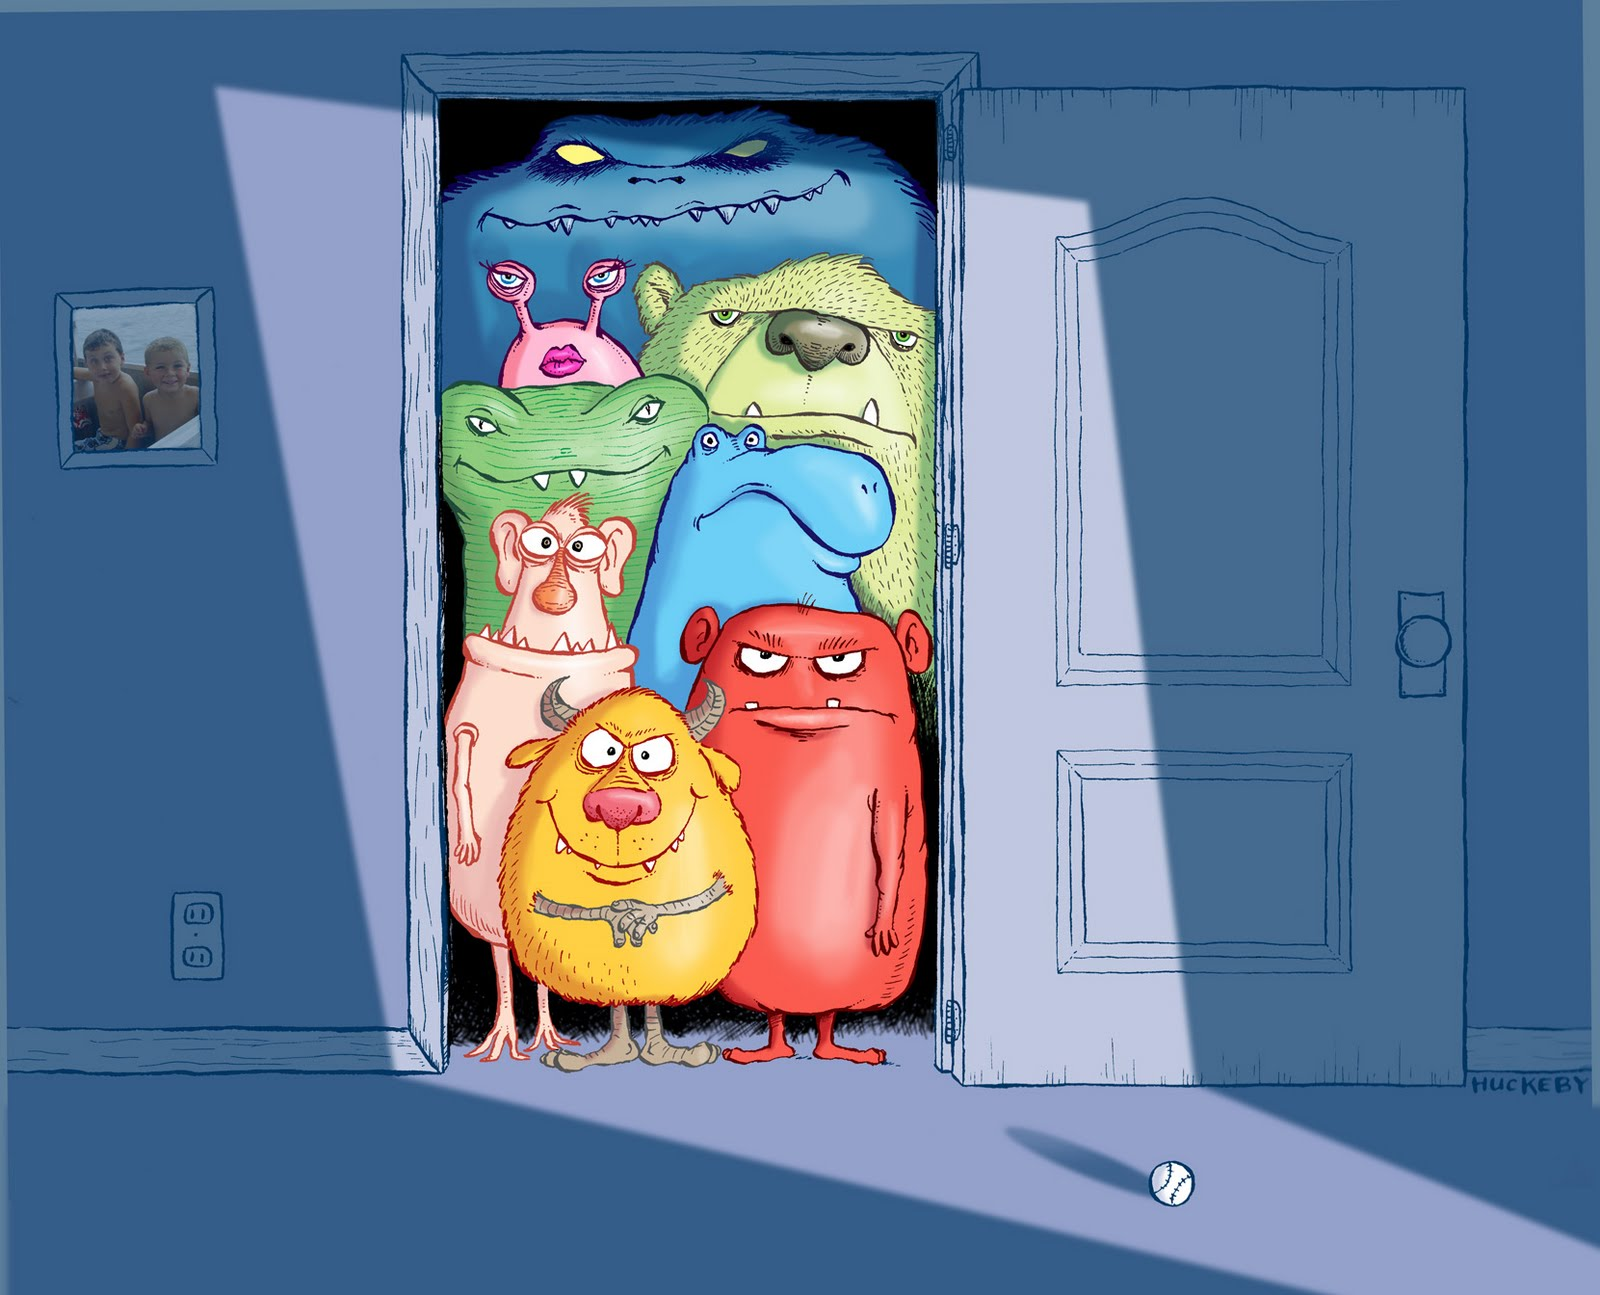 Closet filled with food clipart banner royalty free library Monster in closet clipart - ClipartFest banner royalty free library